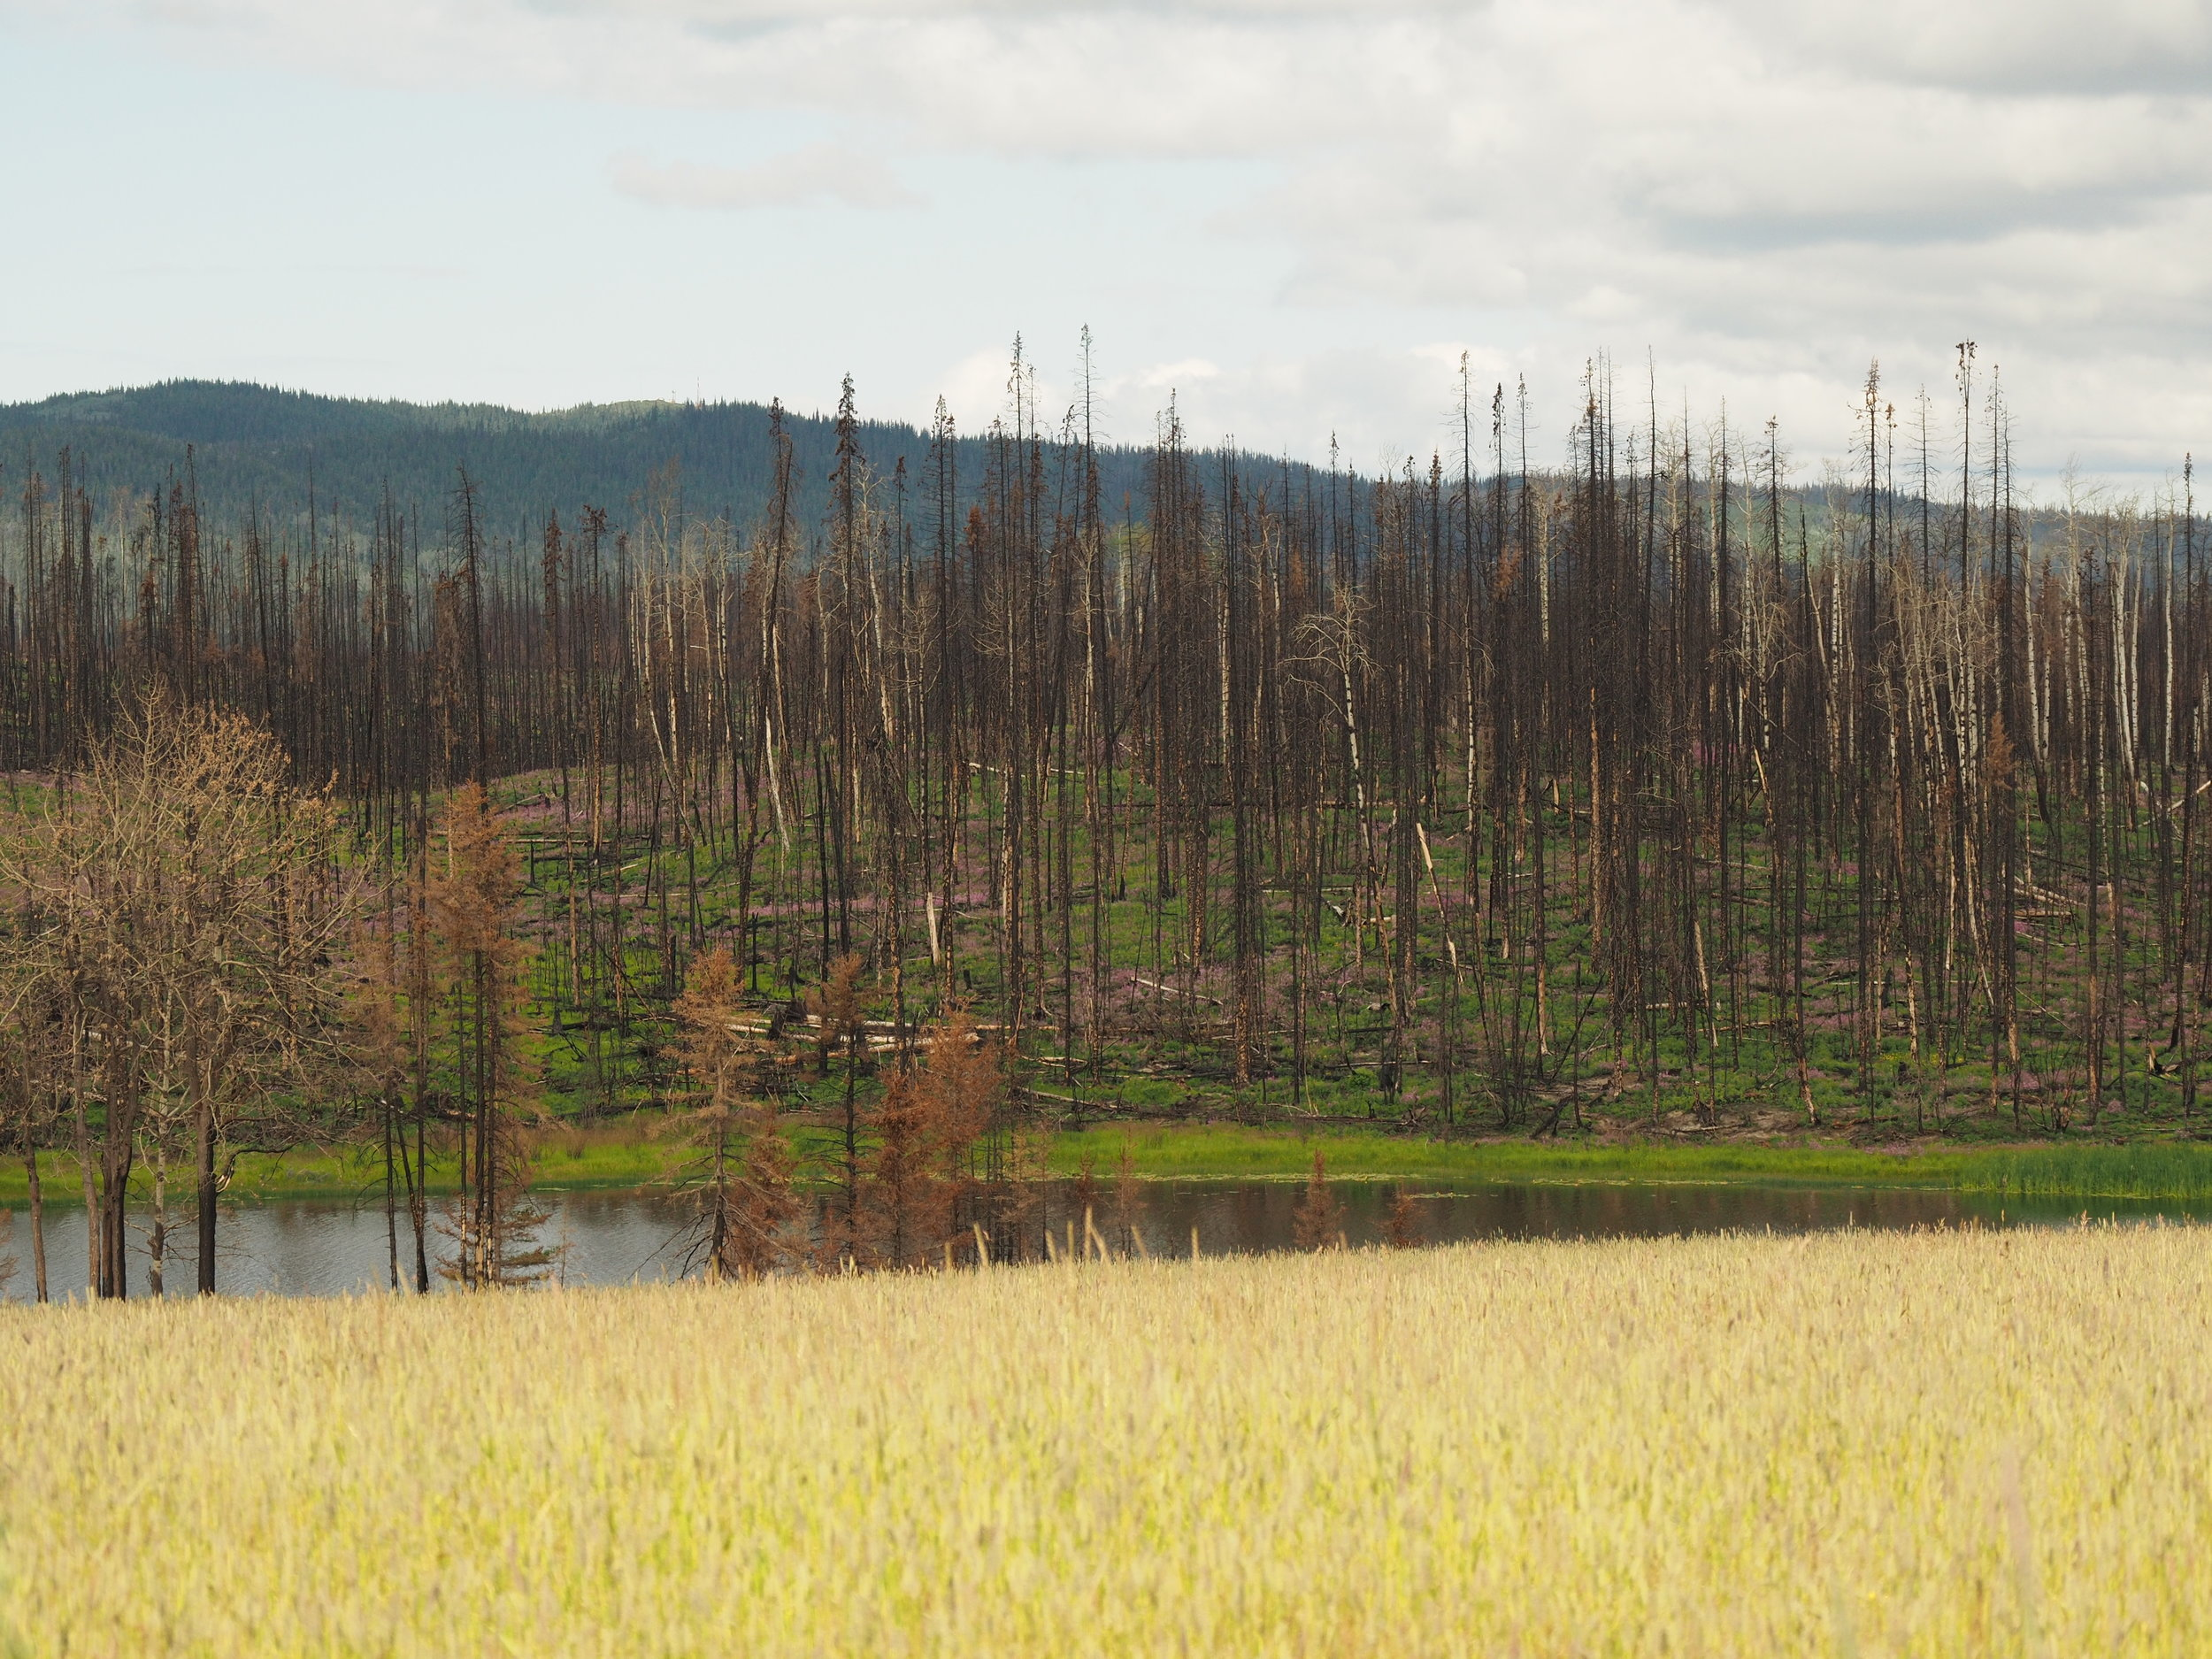 Post-burn landscape